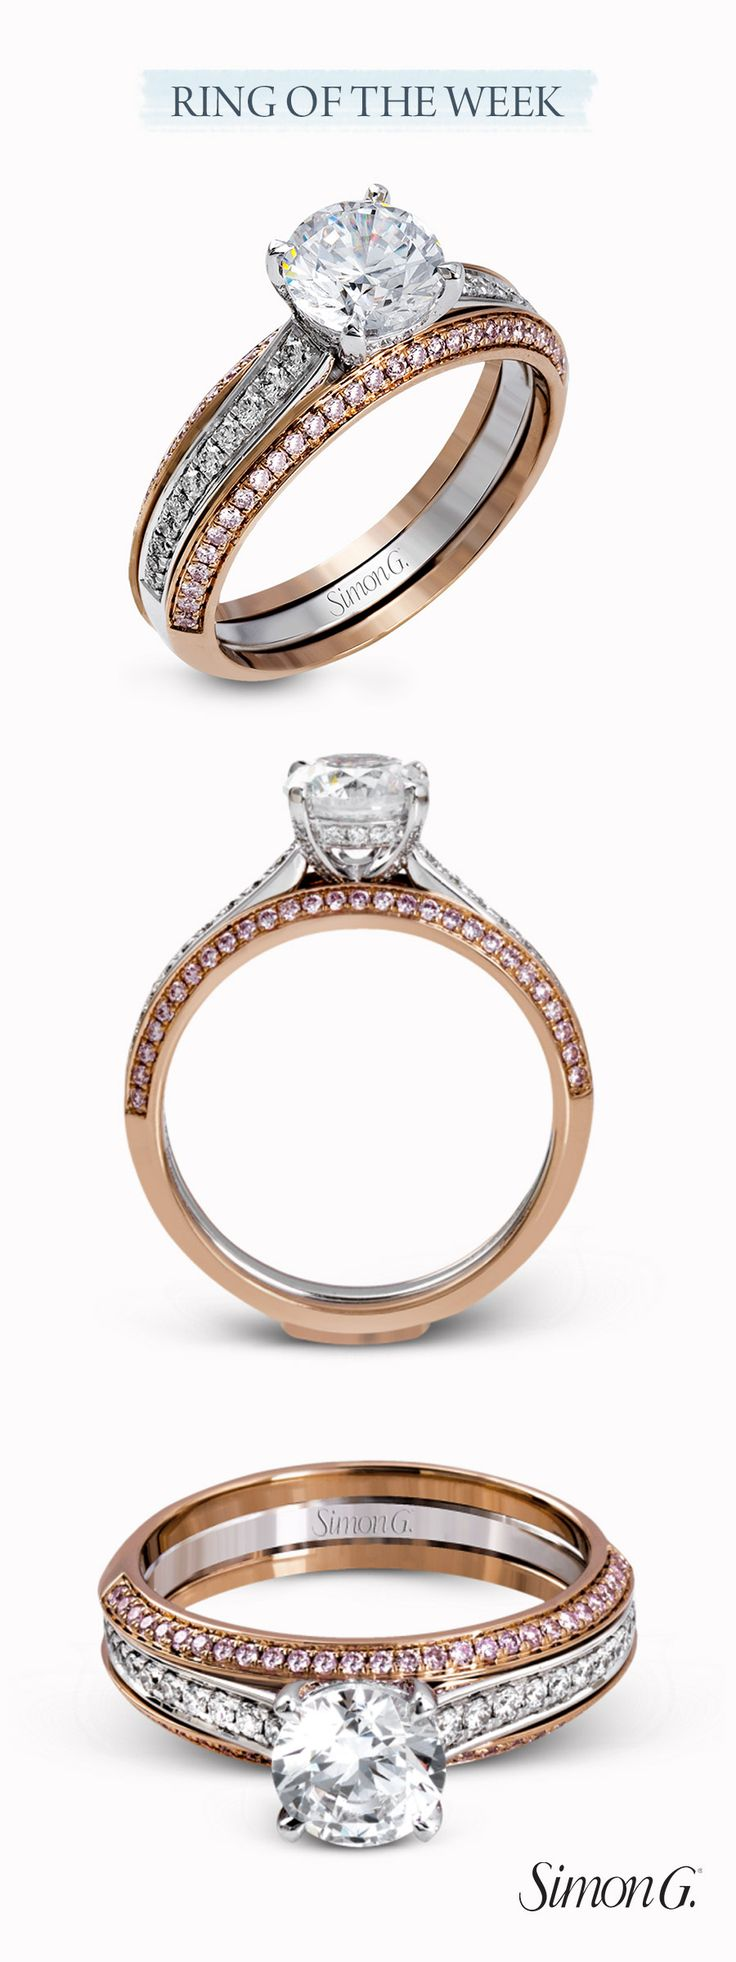 engagement rings 2B jewelry fish hook wedding ring Our RING OF THE WEEK by is perfect for rose gold lovers The engagement ring features white diamonds set into white gold through the center